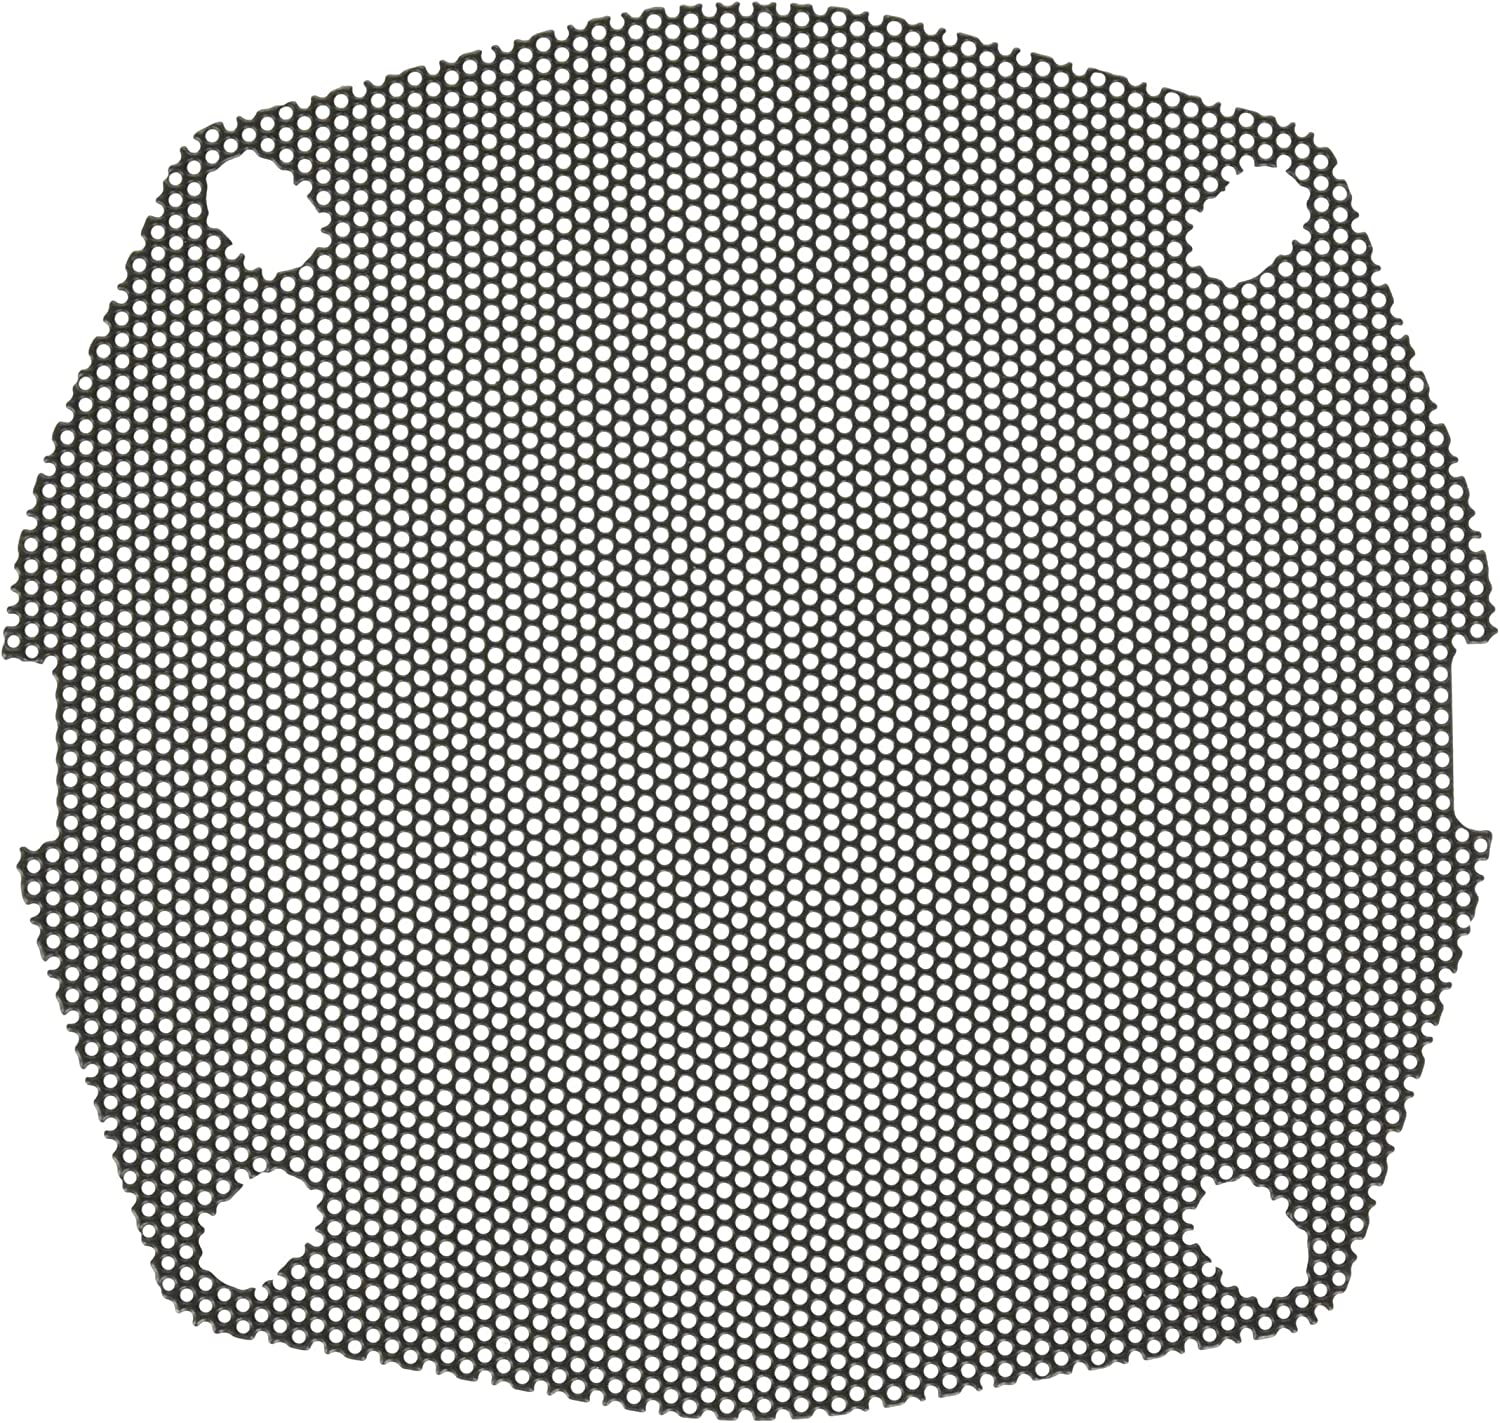 Hogtunes SGF AA Metal Mesh Replacement Front Speaker Grilles for 1996-2013 Harley-Davidson FLH Touring Models SGF GRILL-AA SGF Grill-AA